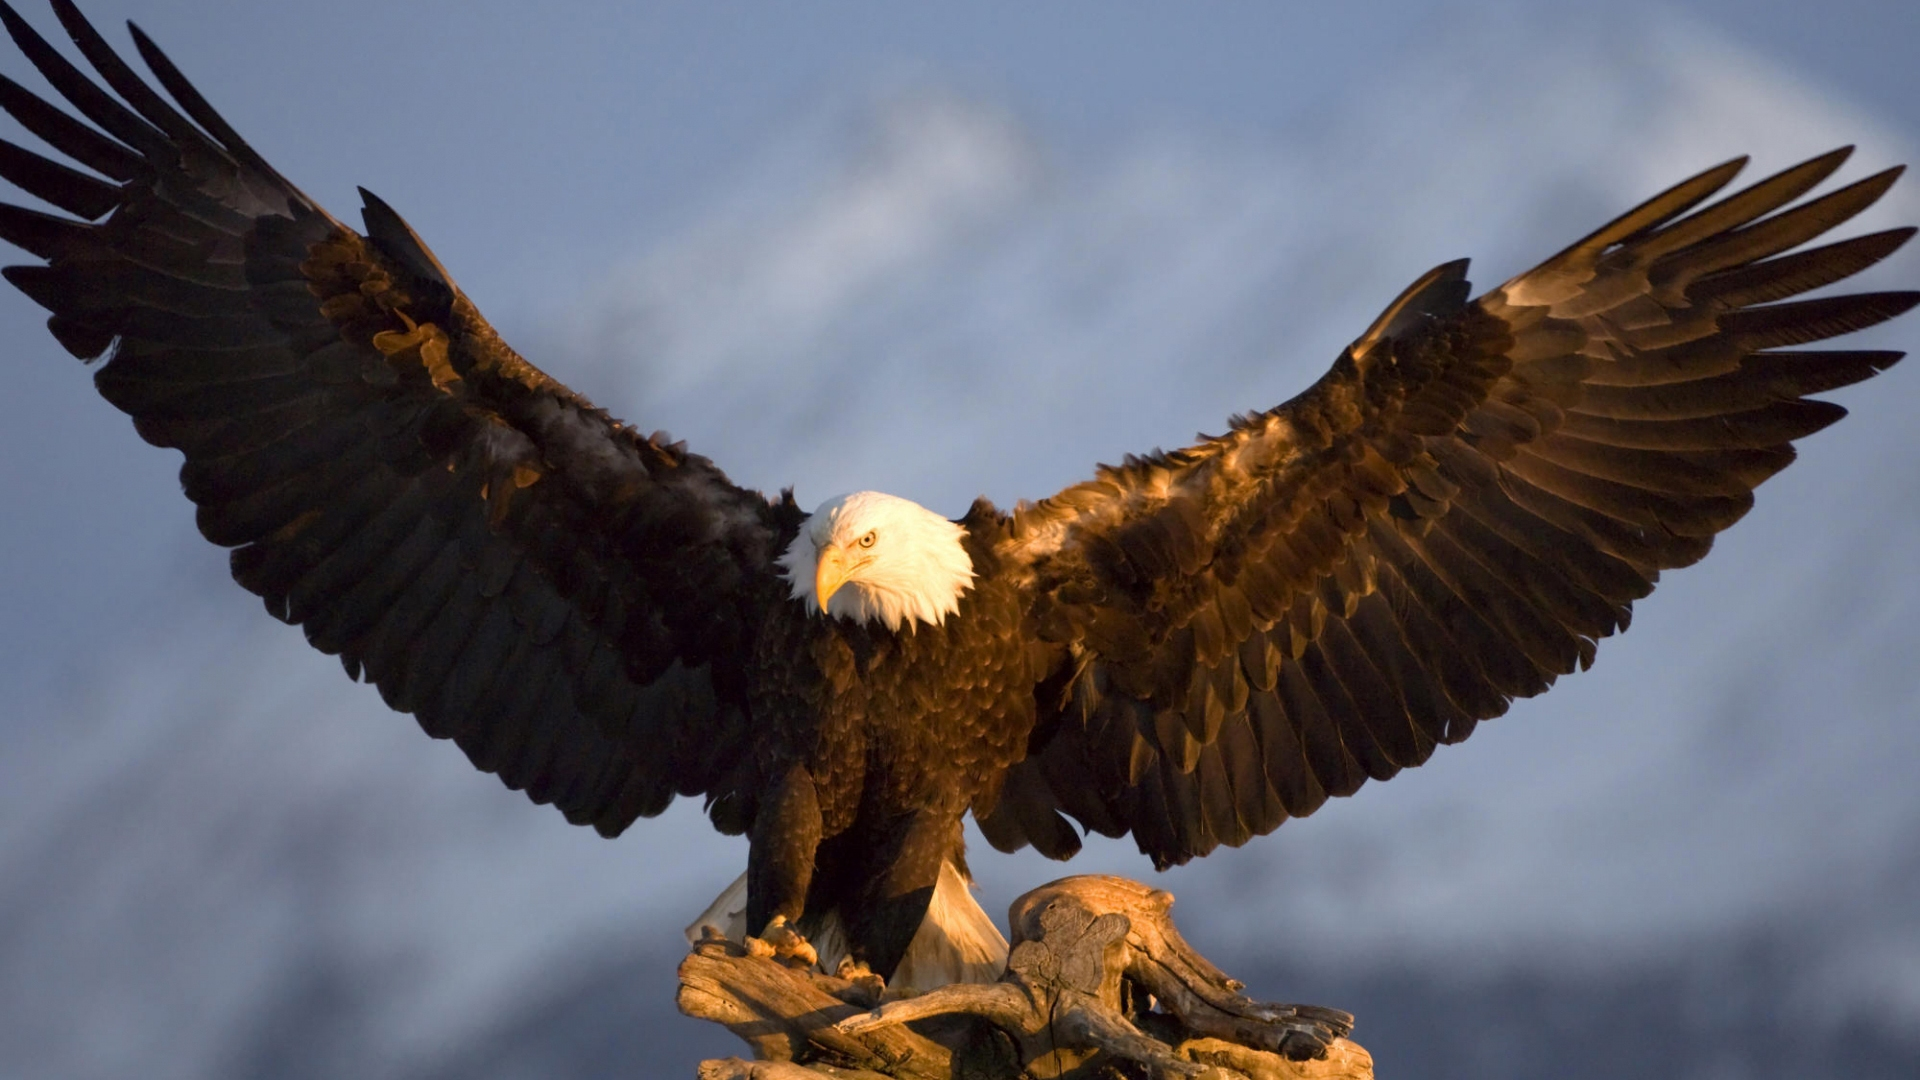 Eagle Face HD Wallpaper in High Resolutions Free Download 1920x1080